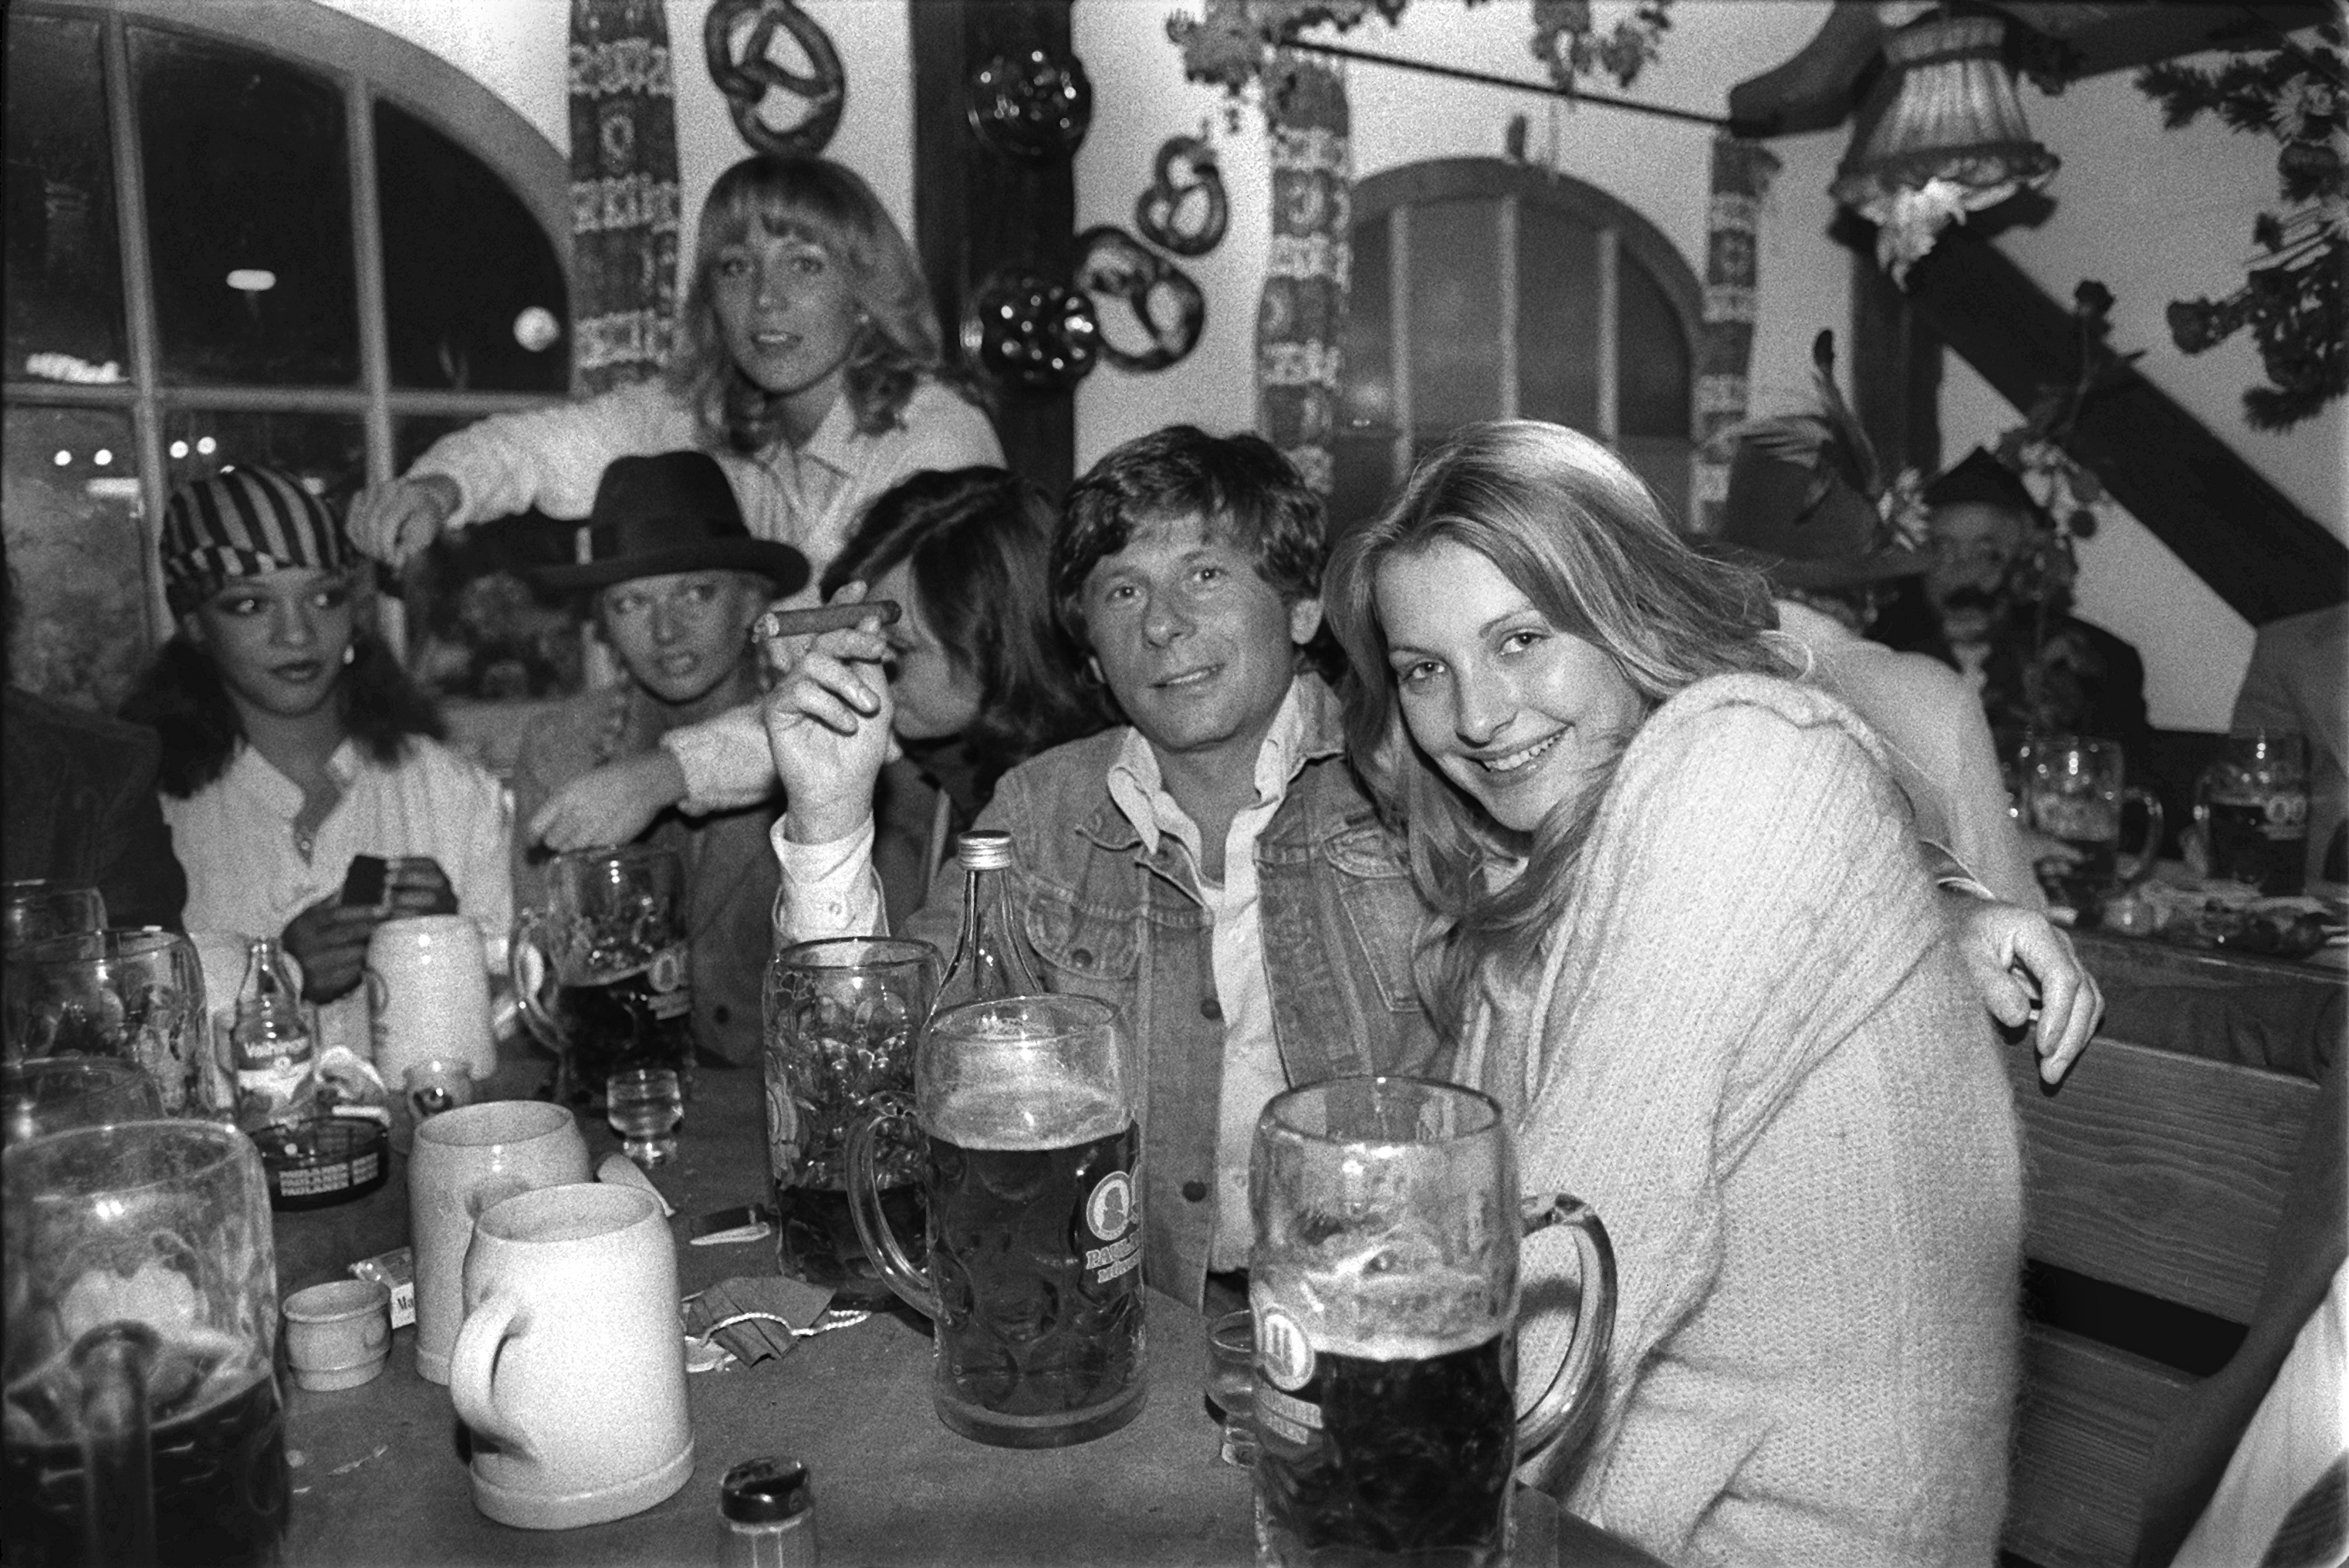 Director Roman Polanski smokes a cigarette and drinks a beer at Oktoberfest, Sept.29, 1977.